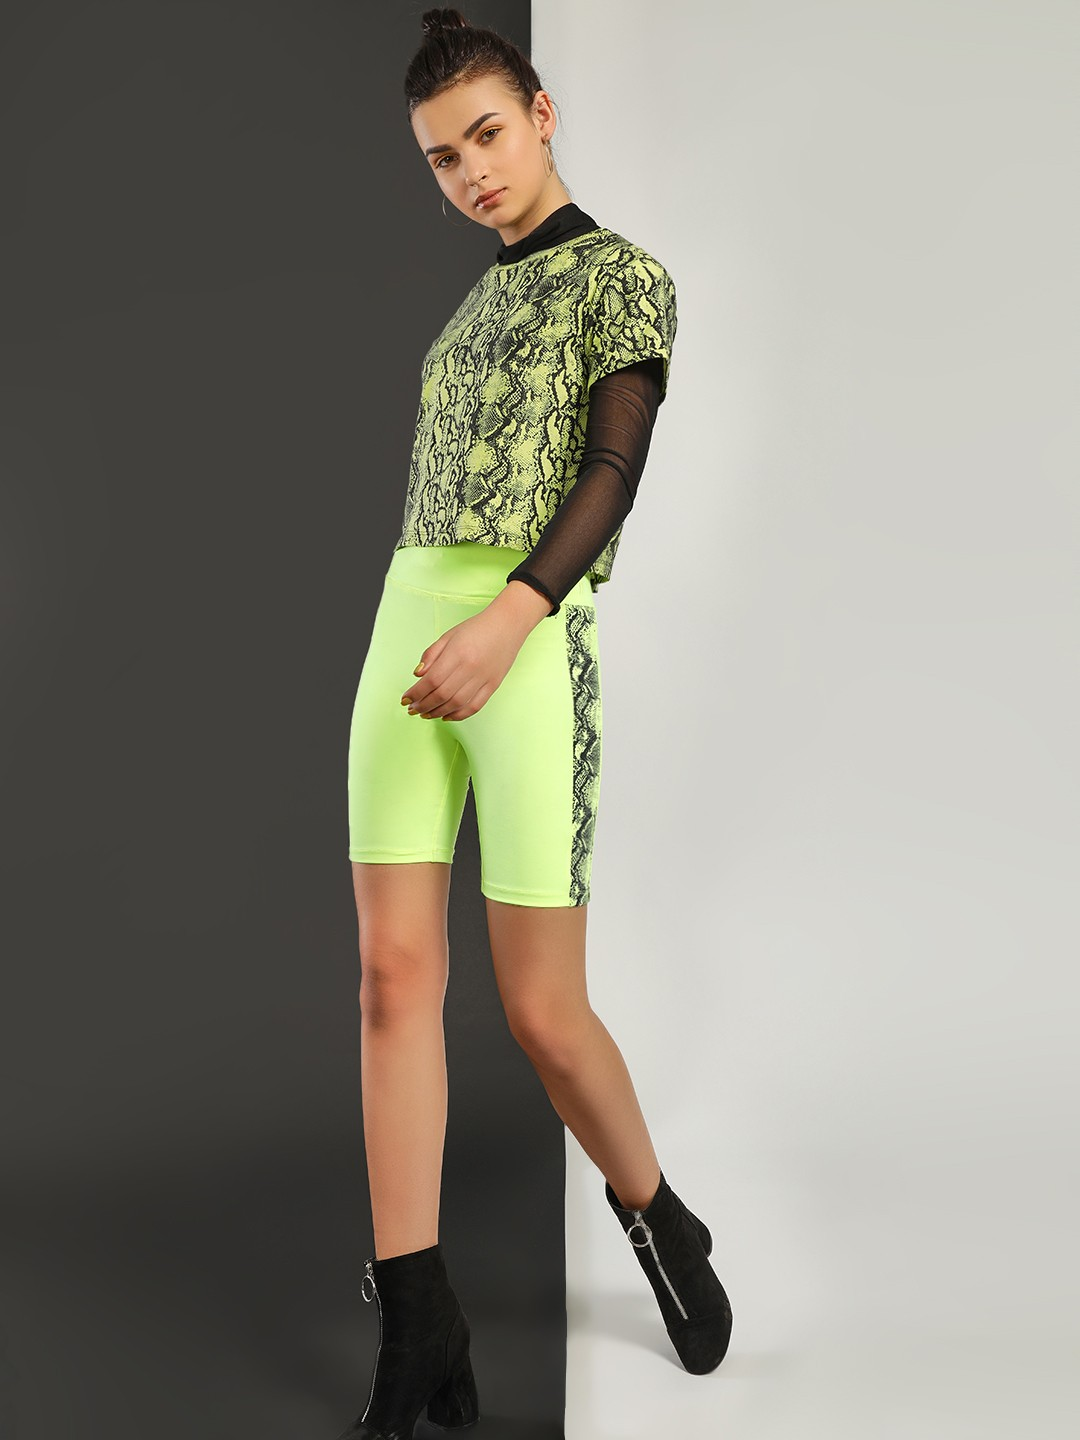 KOOVS NEON Snake Print Tape Cycling Shorts 1